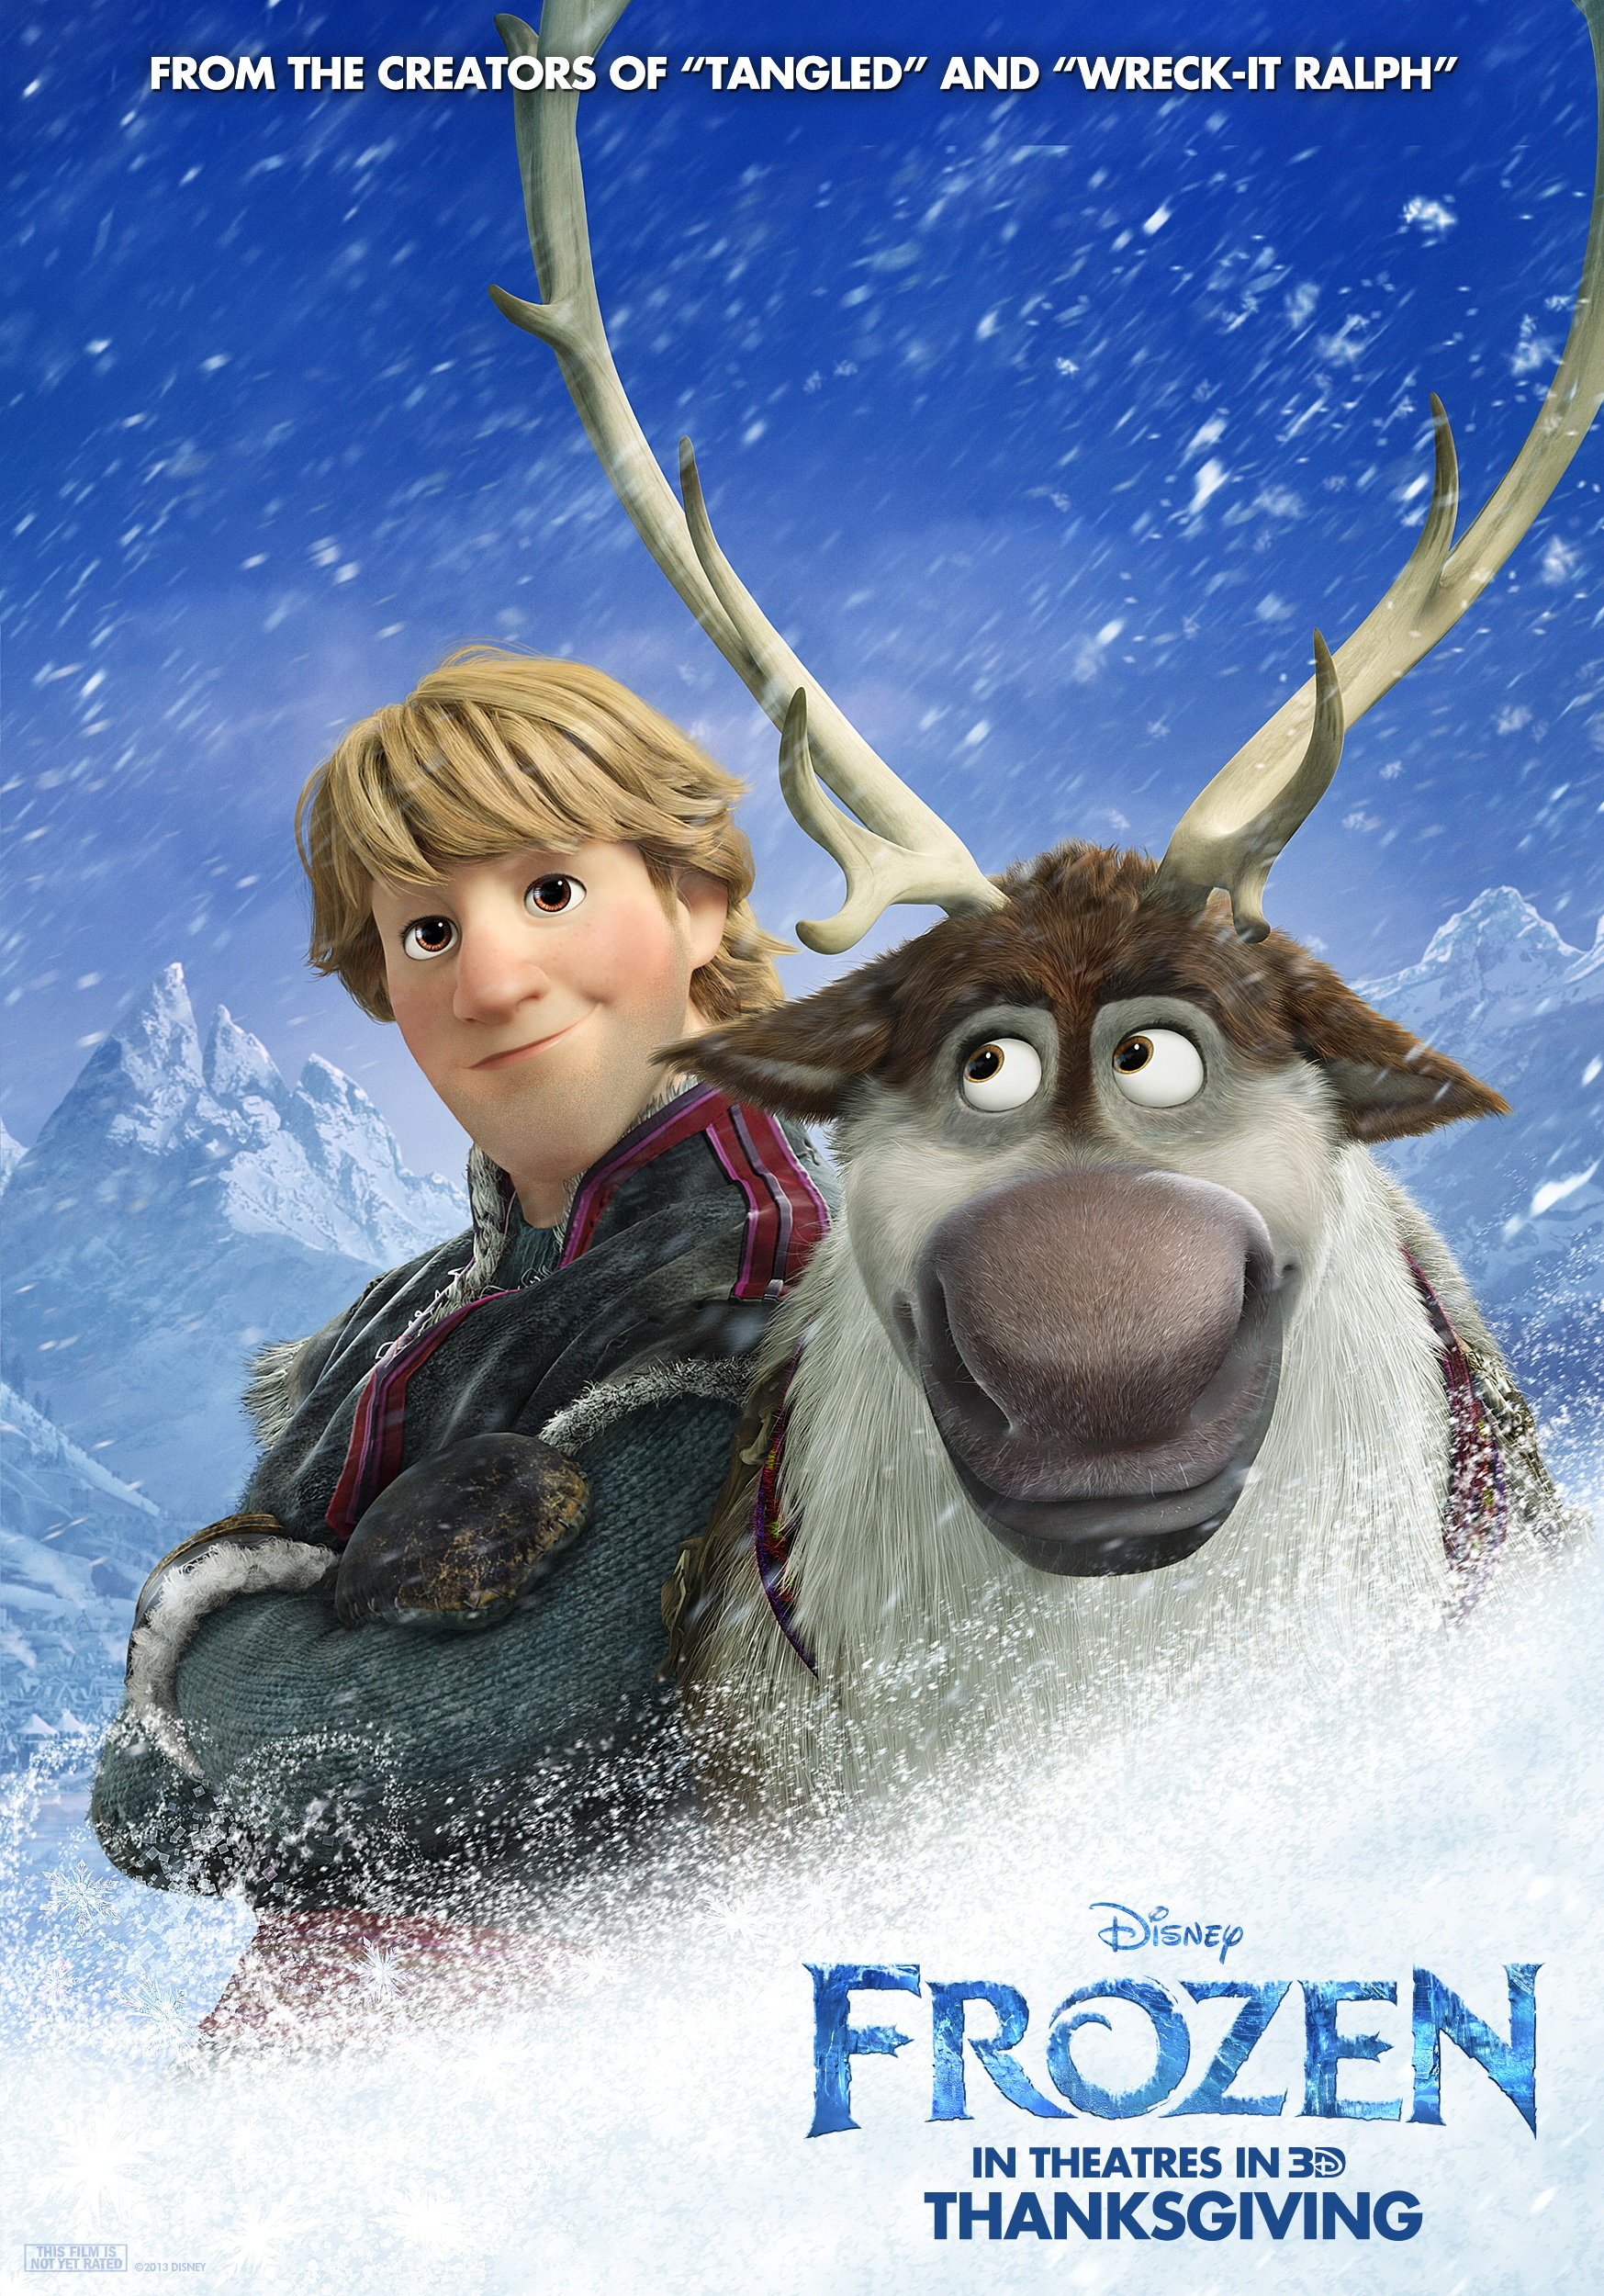 Images of Kristoff From Frozen Image Frozen Kristoff